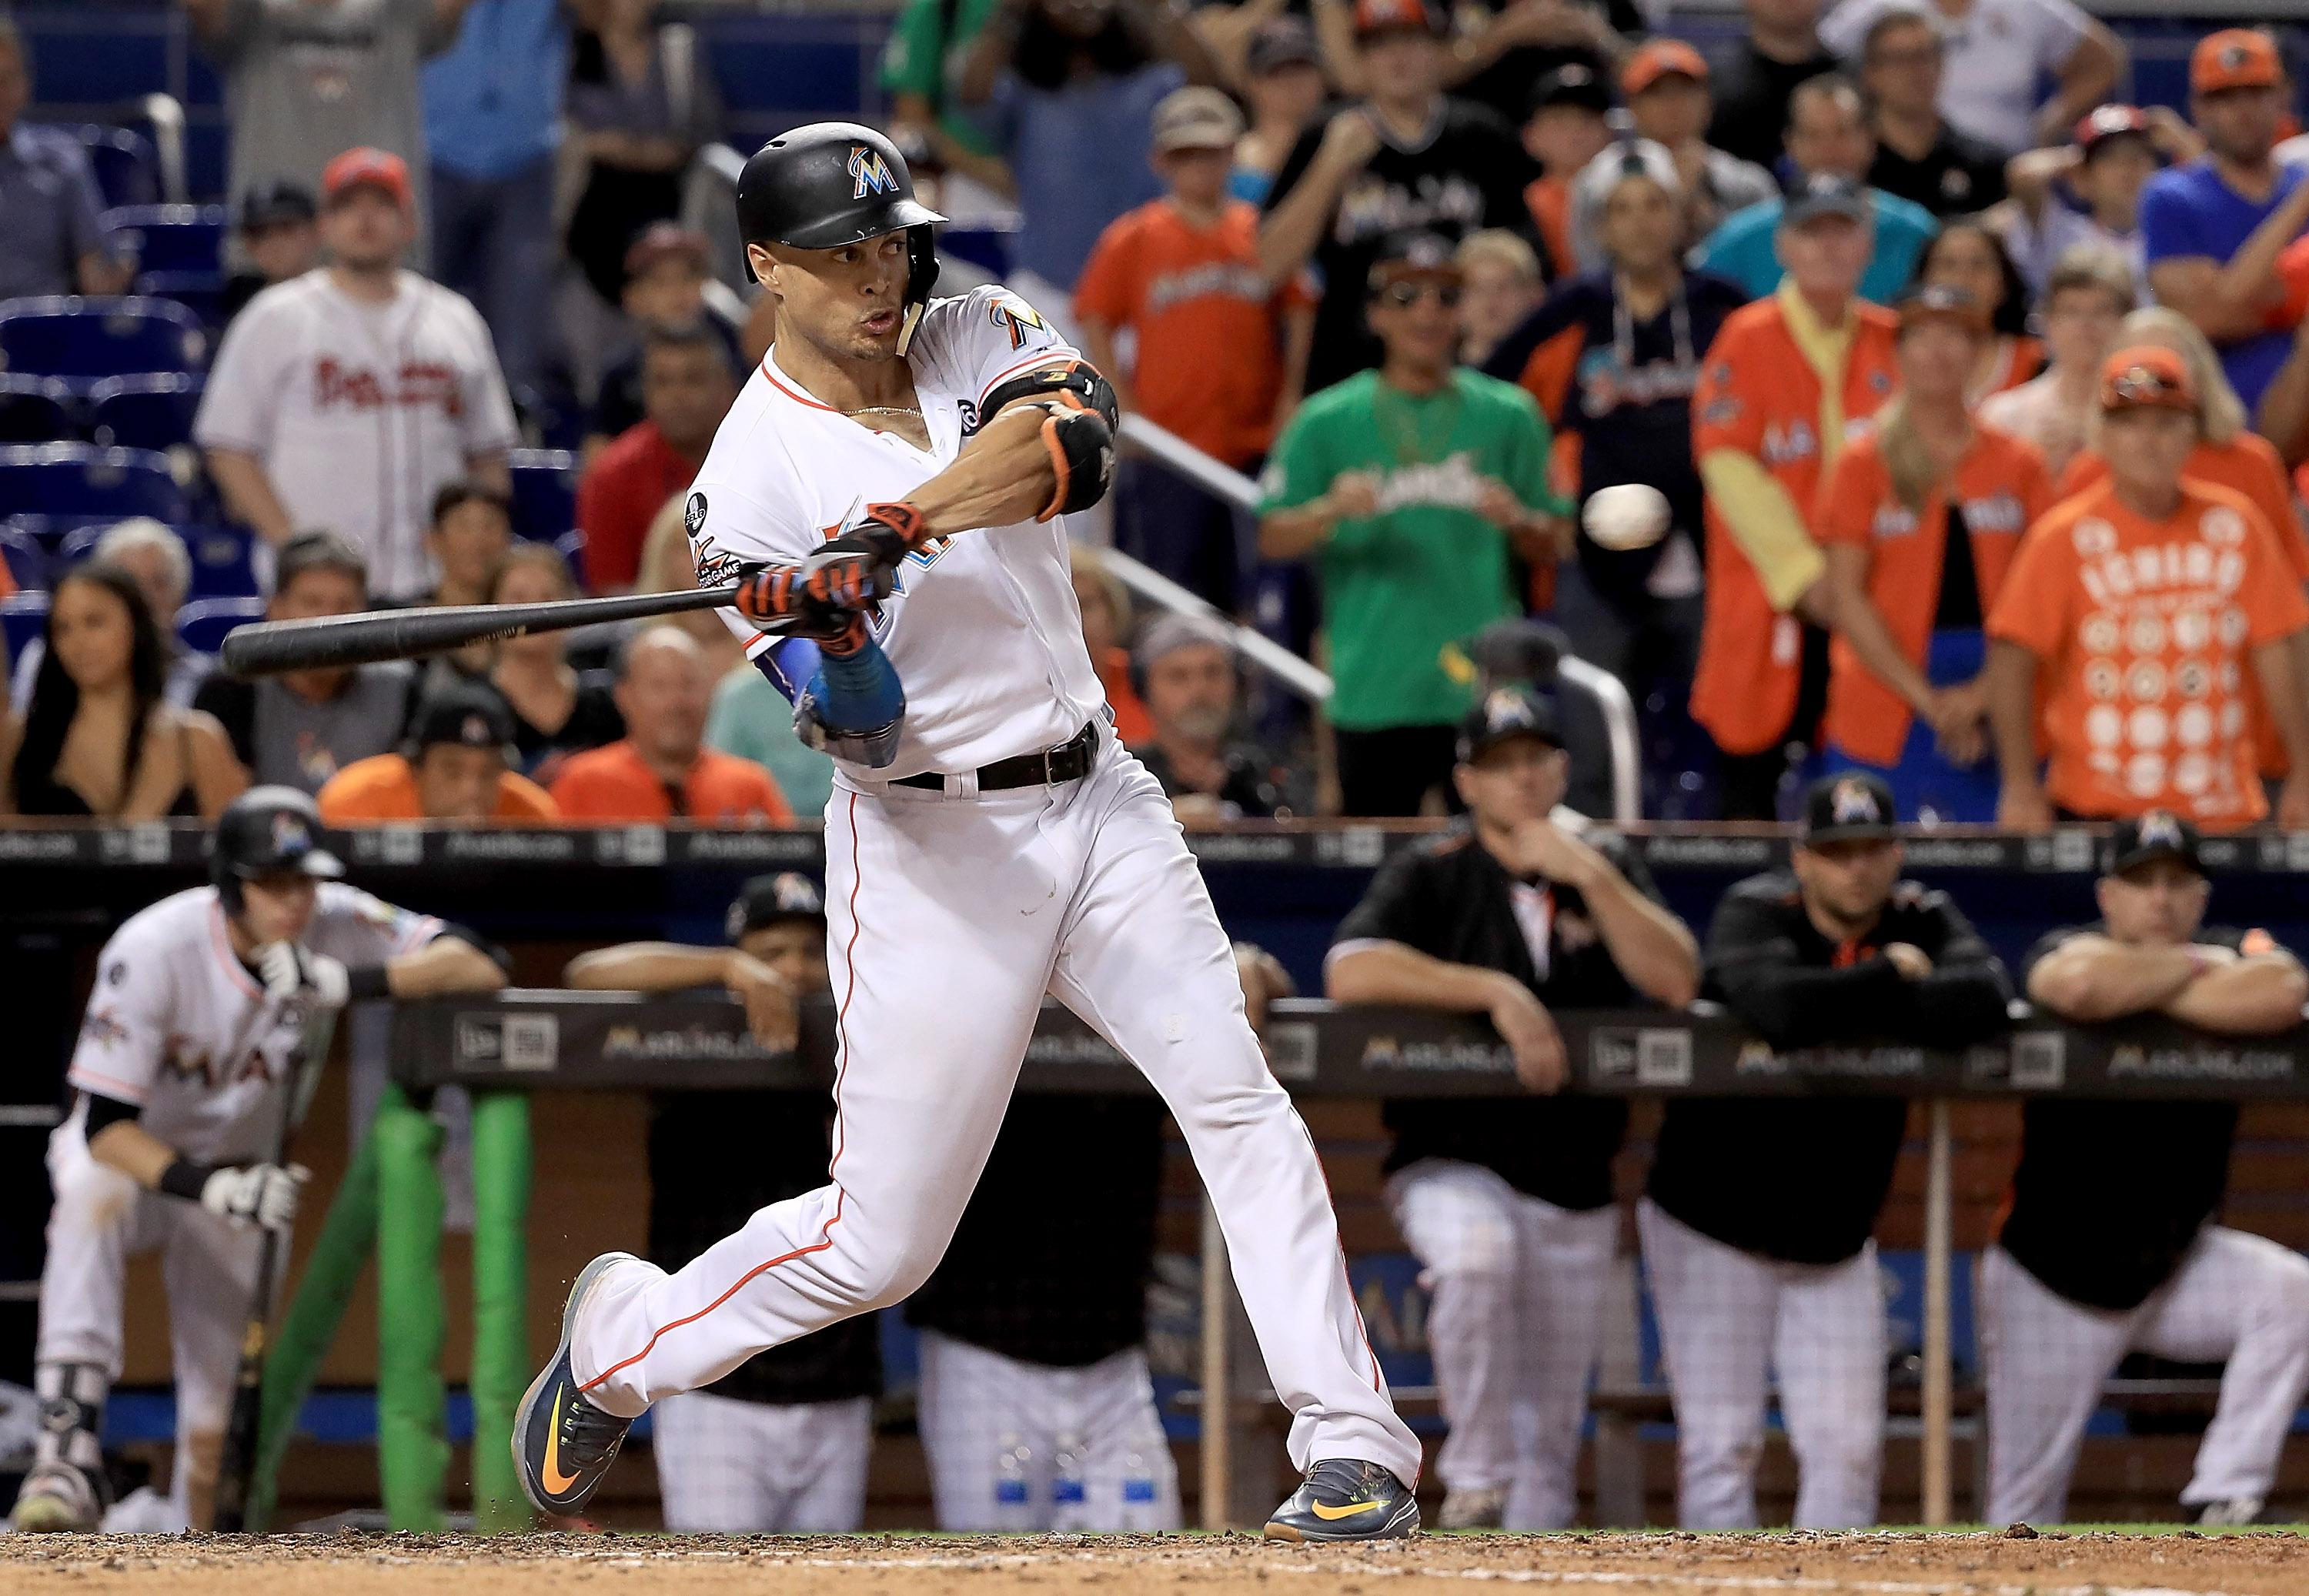 Giancarlo Stanton would accept trade to Chicago Cubs